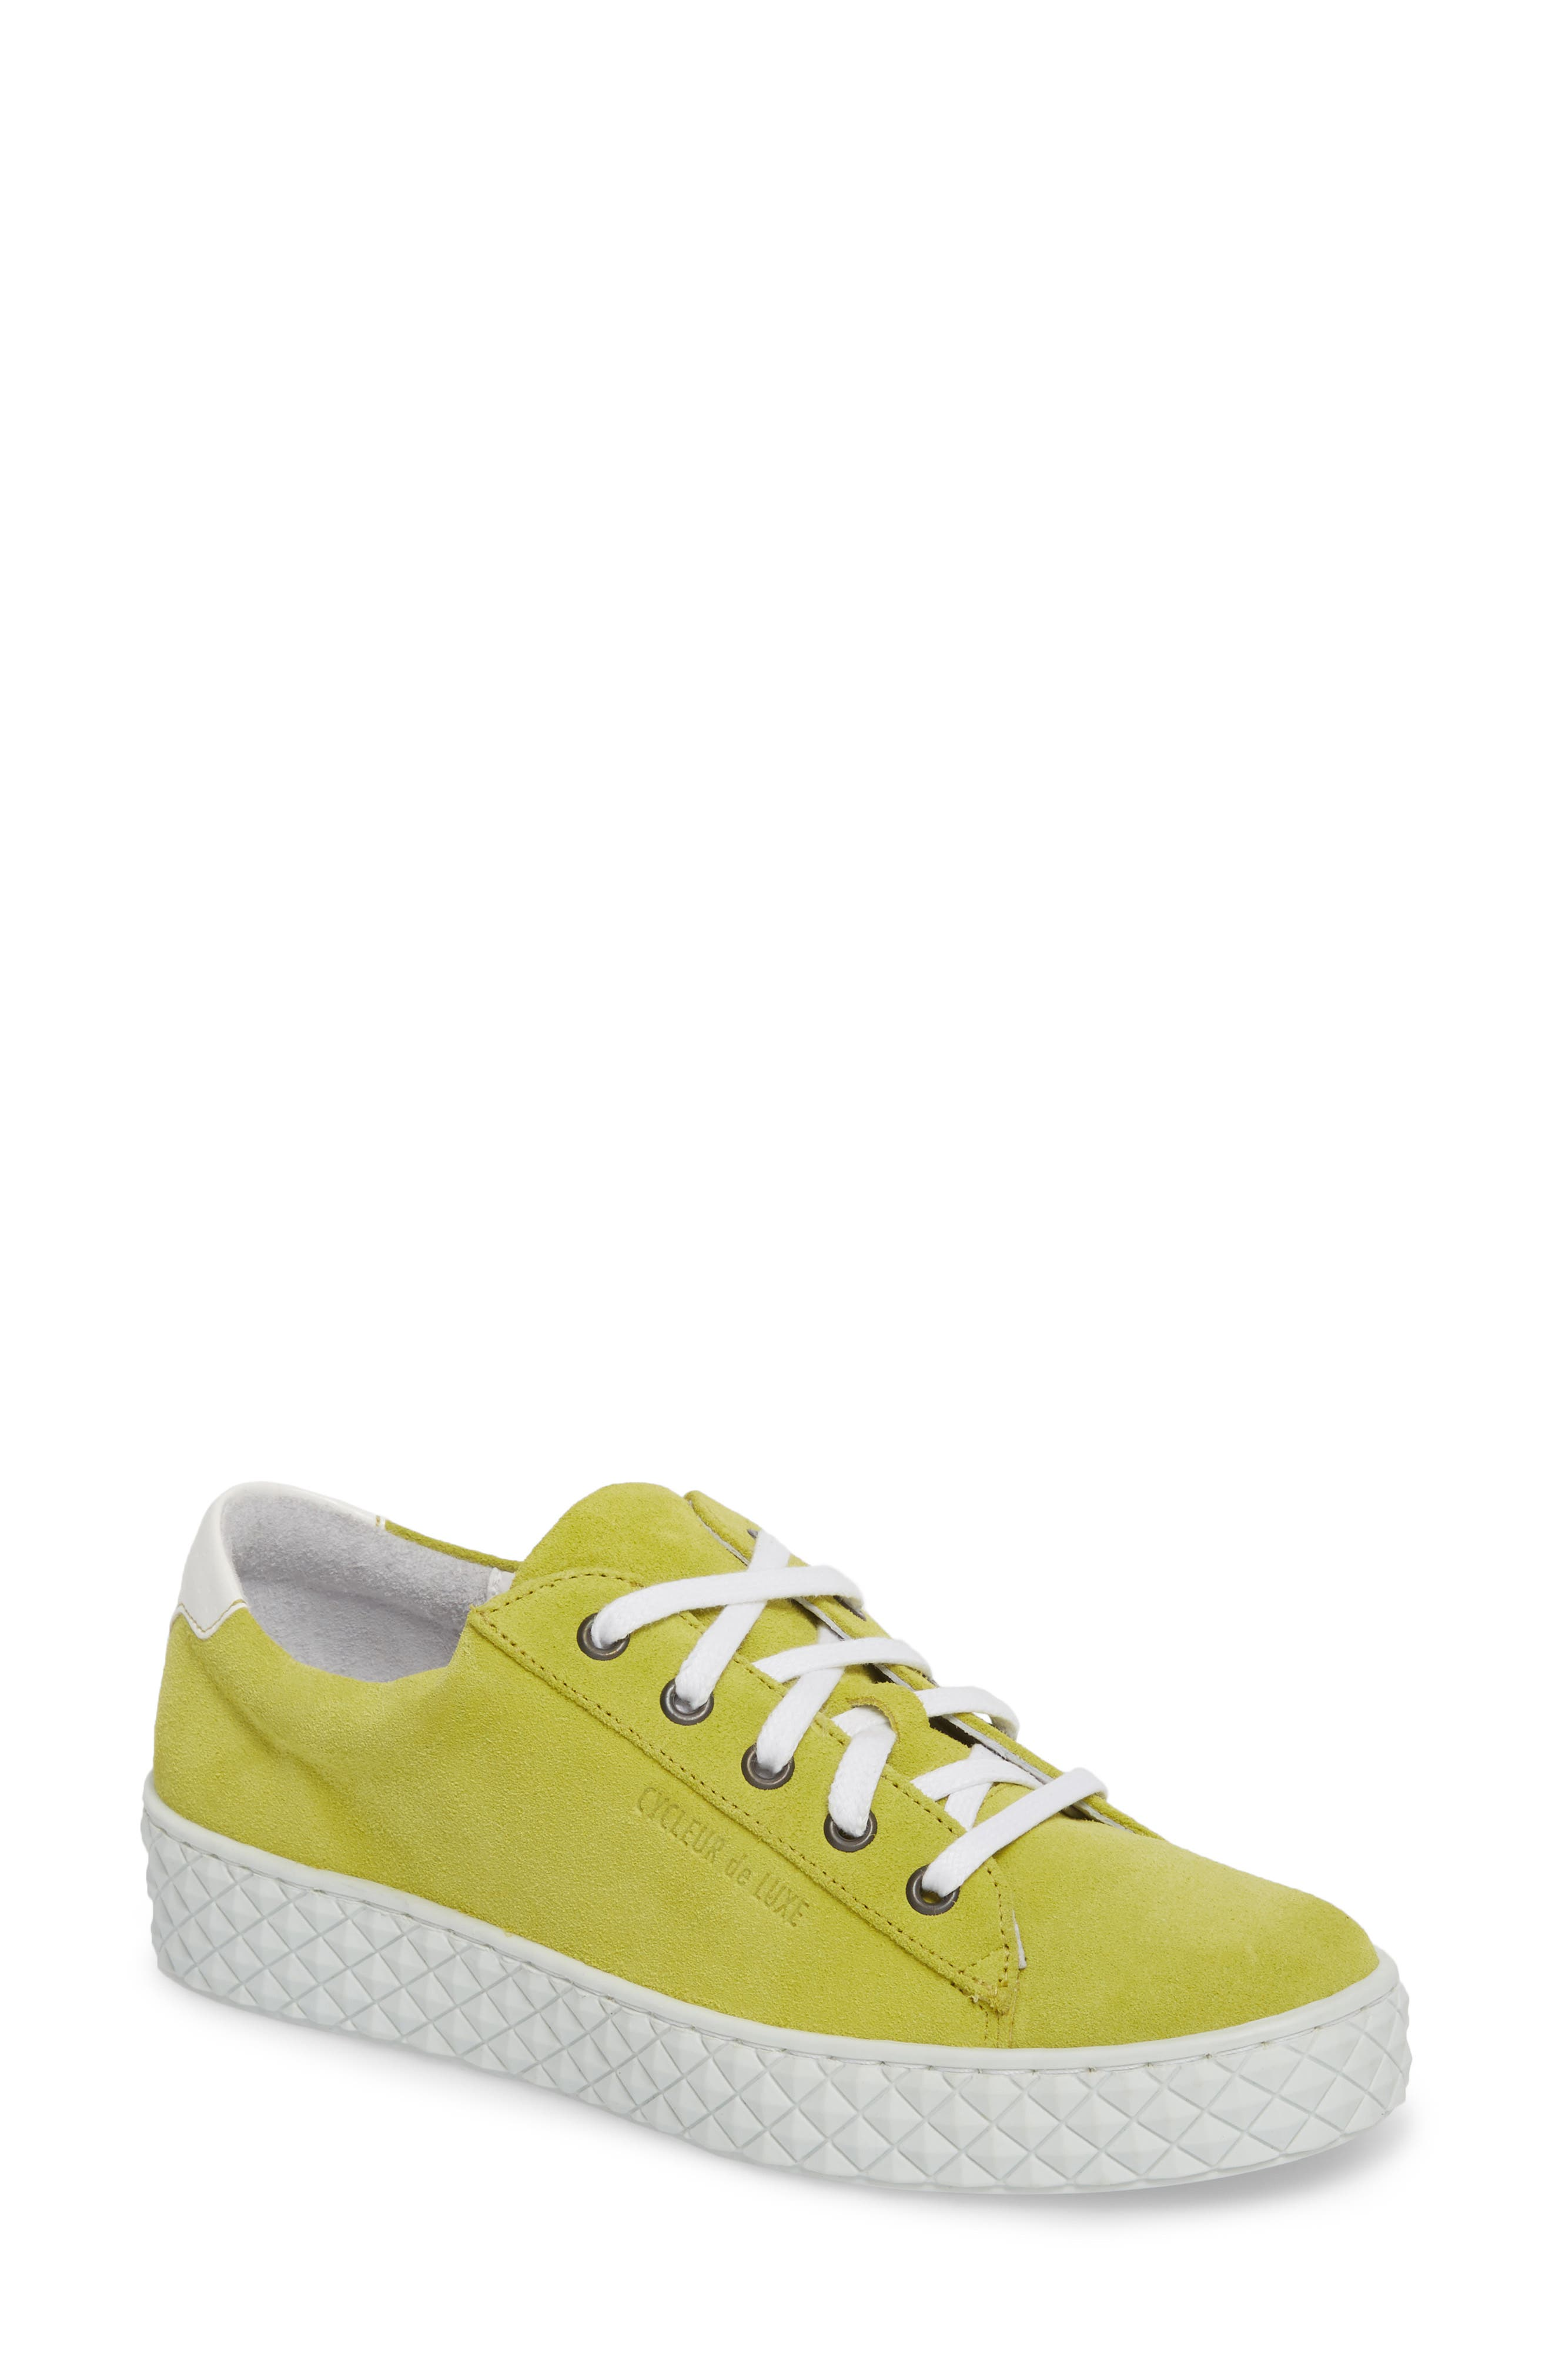 Albufeira Sneaker,                         Main,                         color, Lime/ Optic White Suede